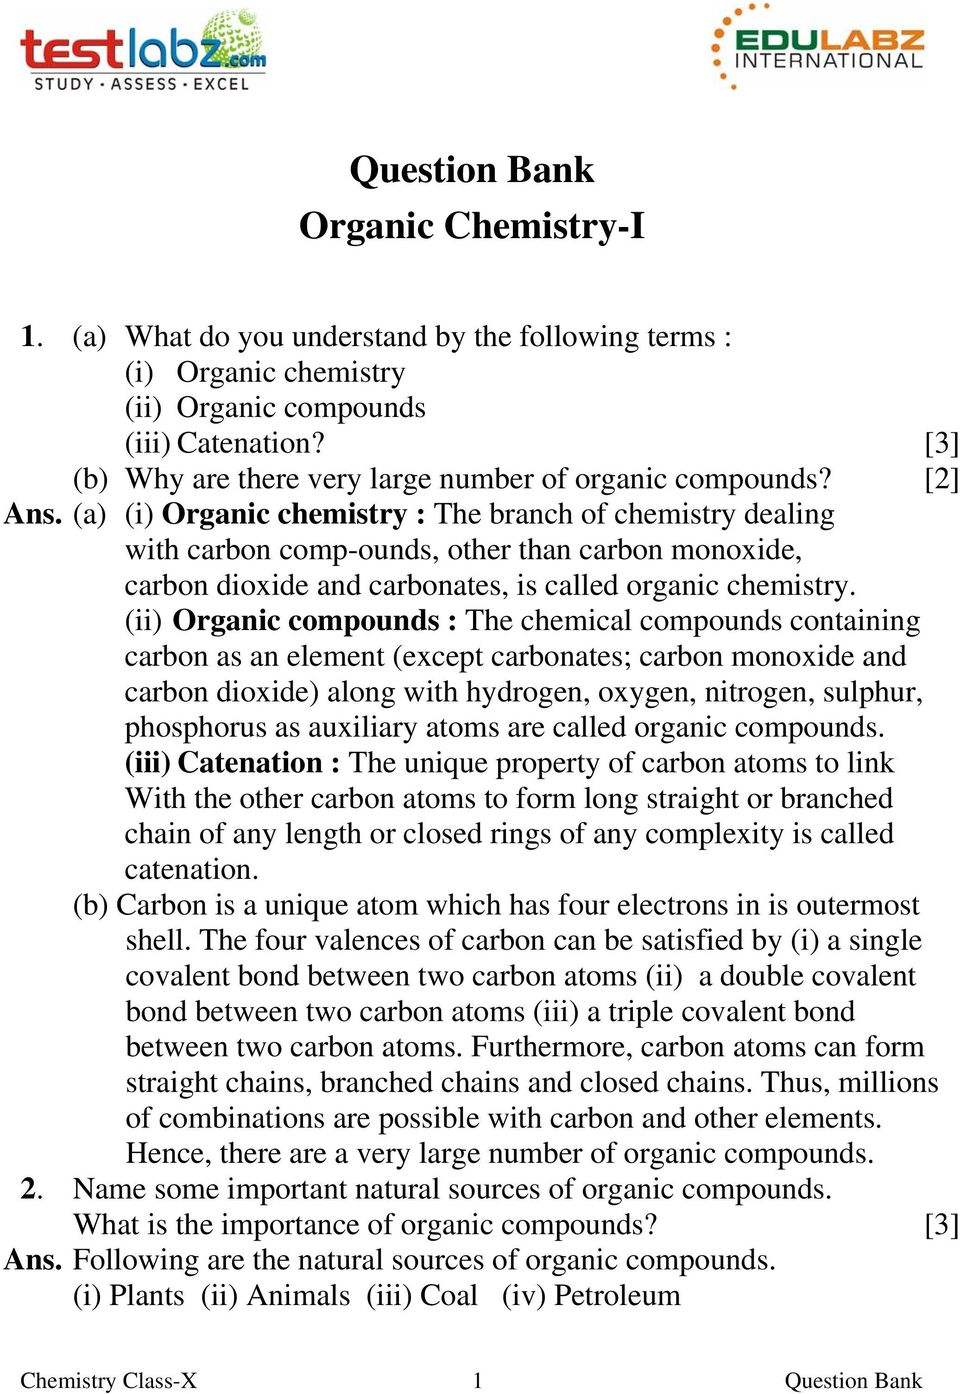 (a) (i) Organic chemistry : The branch of chemistry dealing with carbon comp-ounds, other than carbon monoxide, carbon dioxide and carbonates, is called organic chemistry.